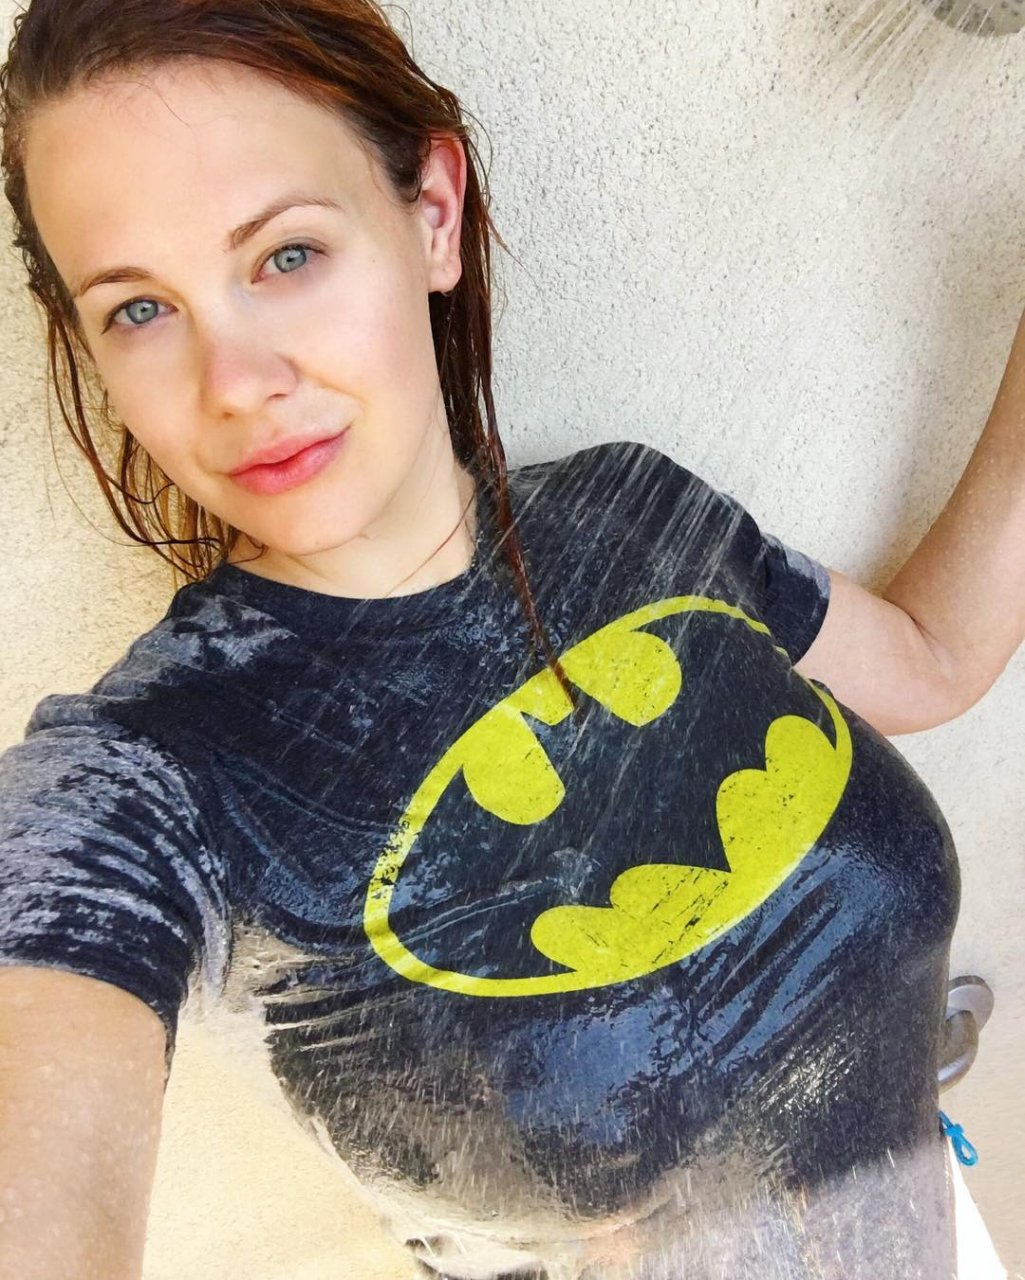 Maitland ward thefappening page 2